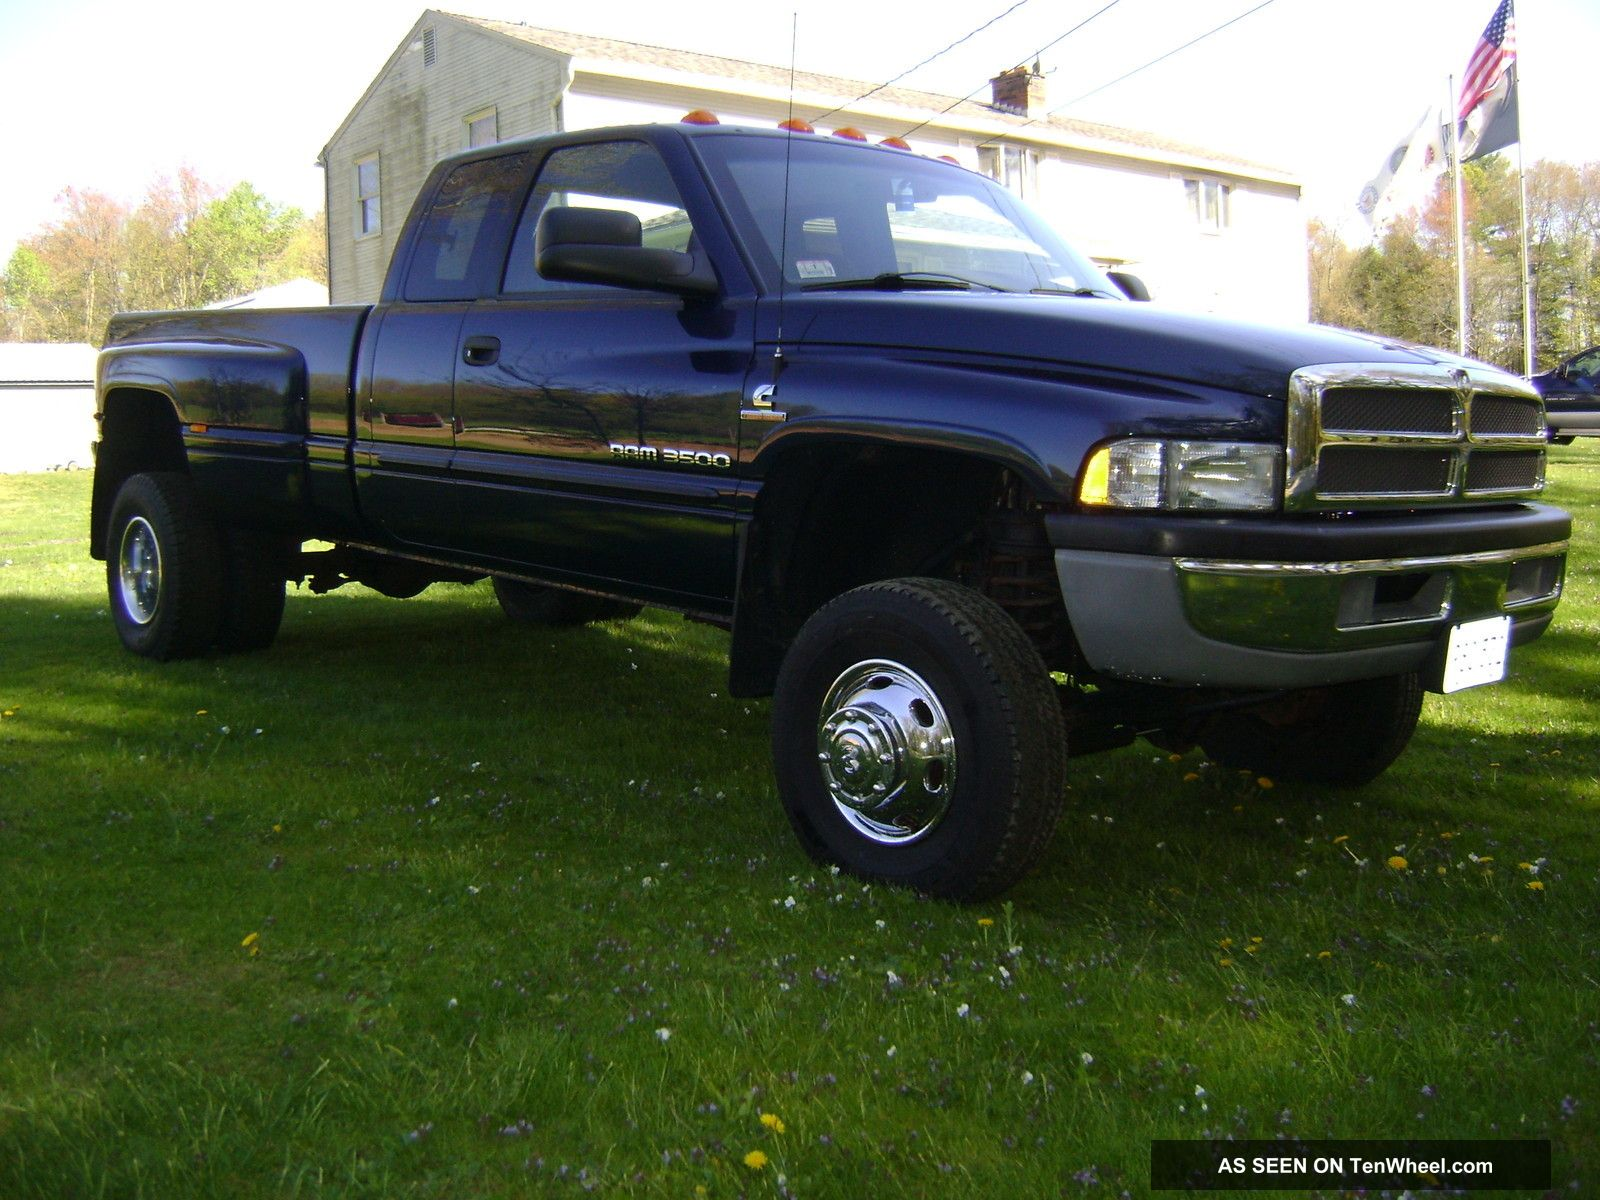 2001 dodge ram 3500 dually quad cab 5 9l cummins diesel 4x4 6spd. Black Bedroom Furniture Sets. Home Design Ideas